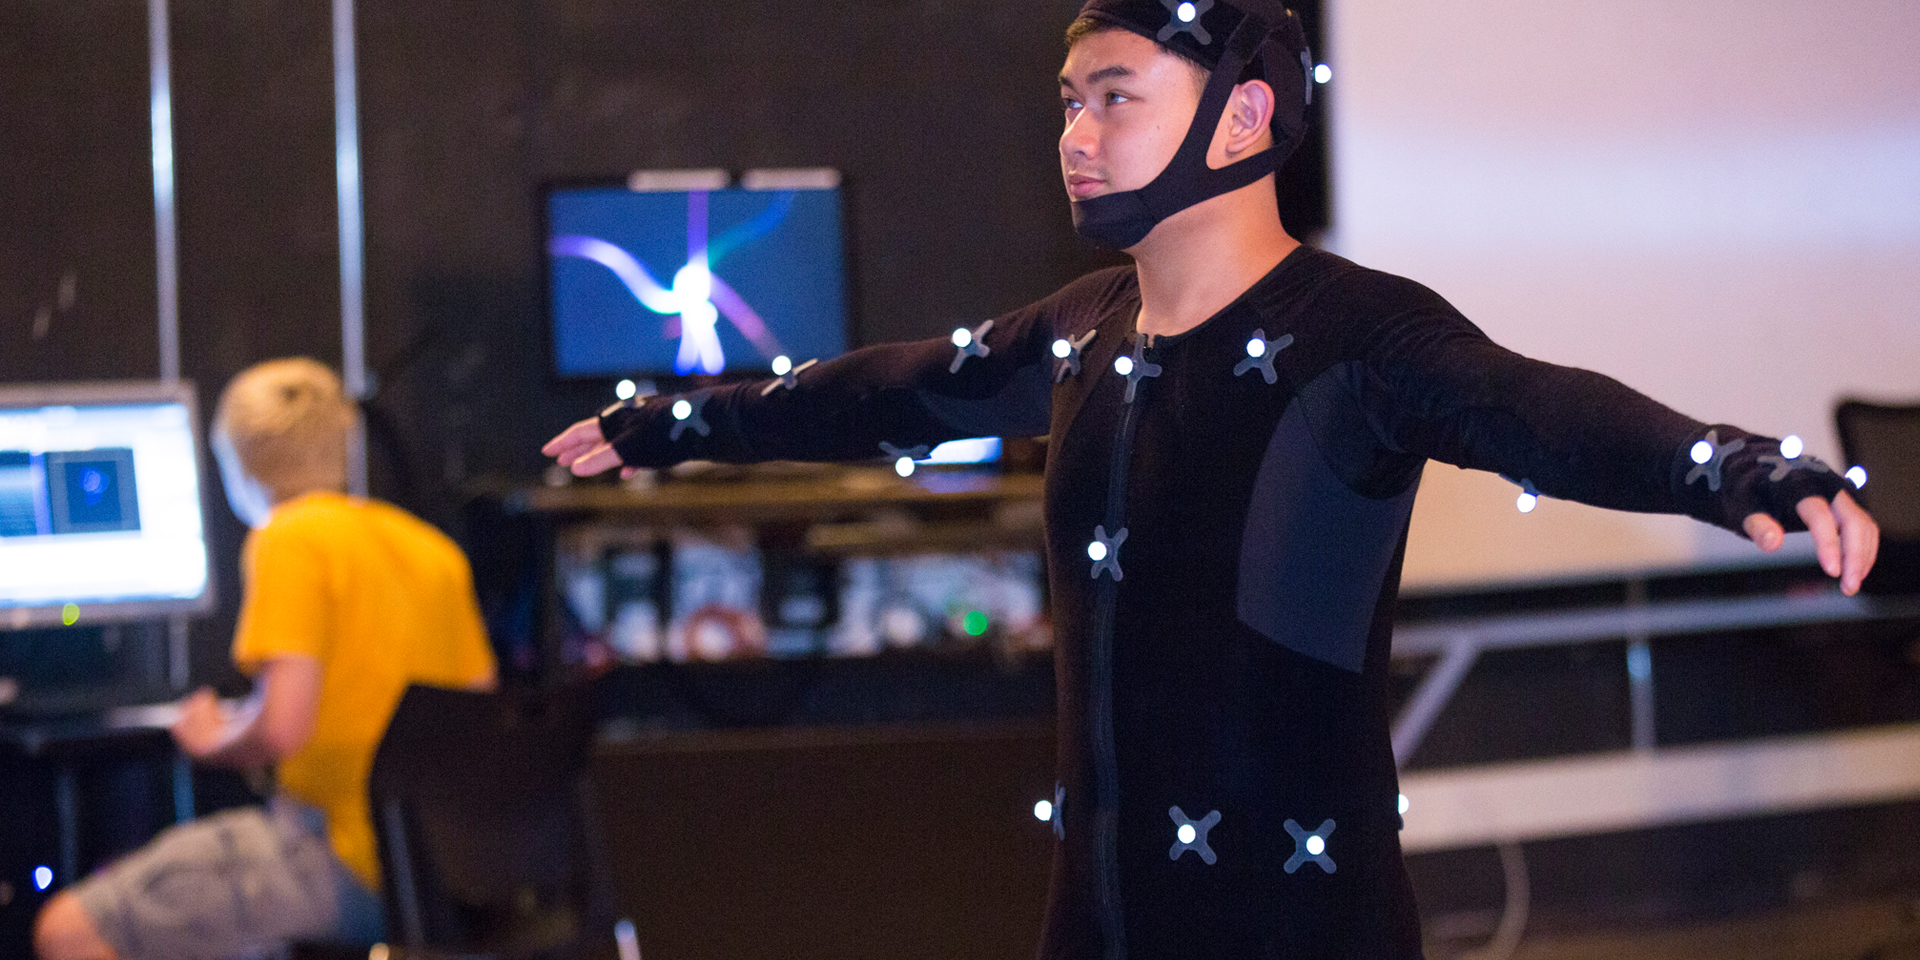 Instructor Designs Motion Capture Classroom Using Unreal